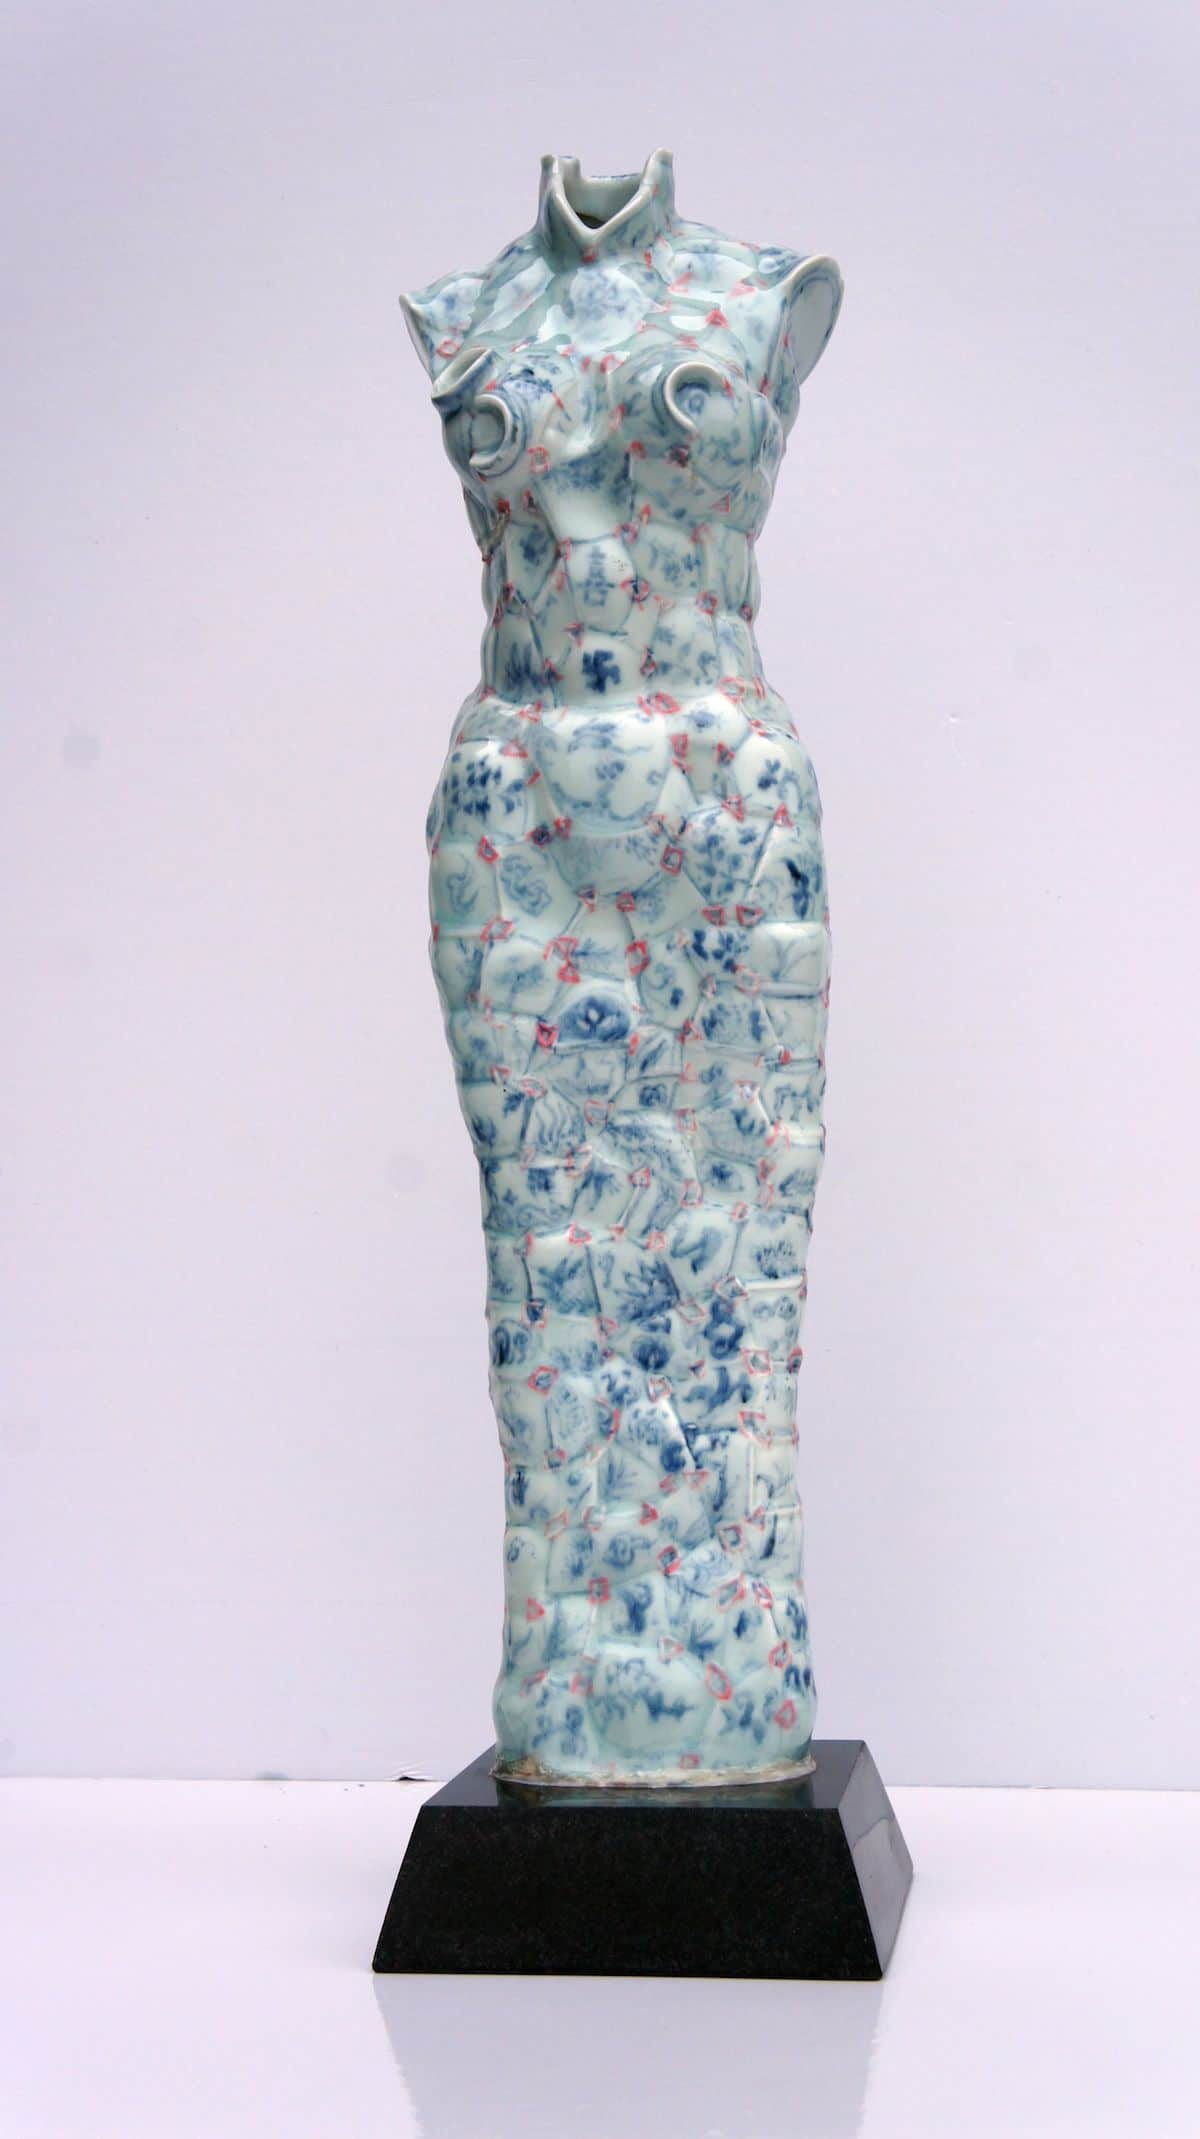 Artist Uses Hundreds of Shards of Chinese Porcelain to Create ...